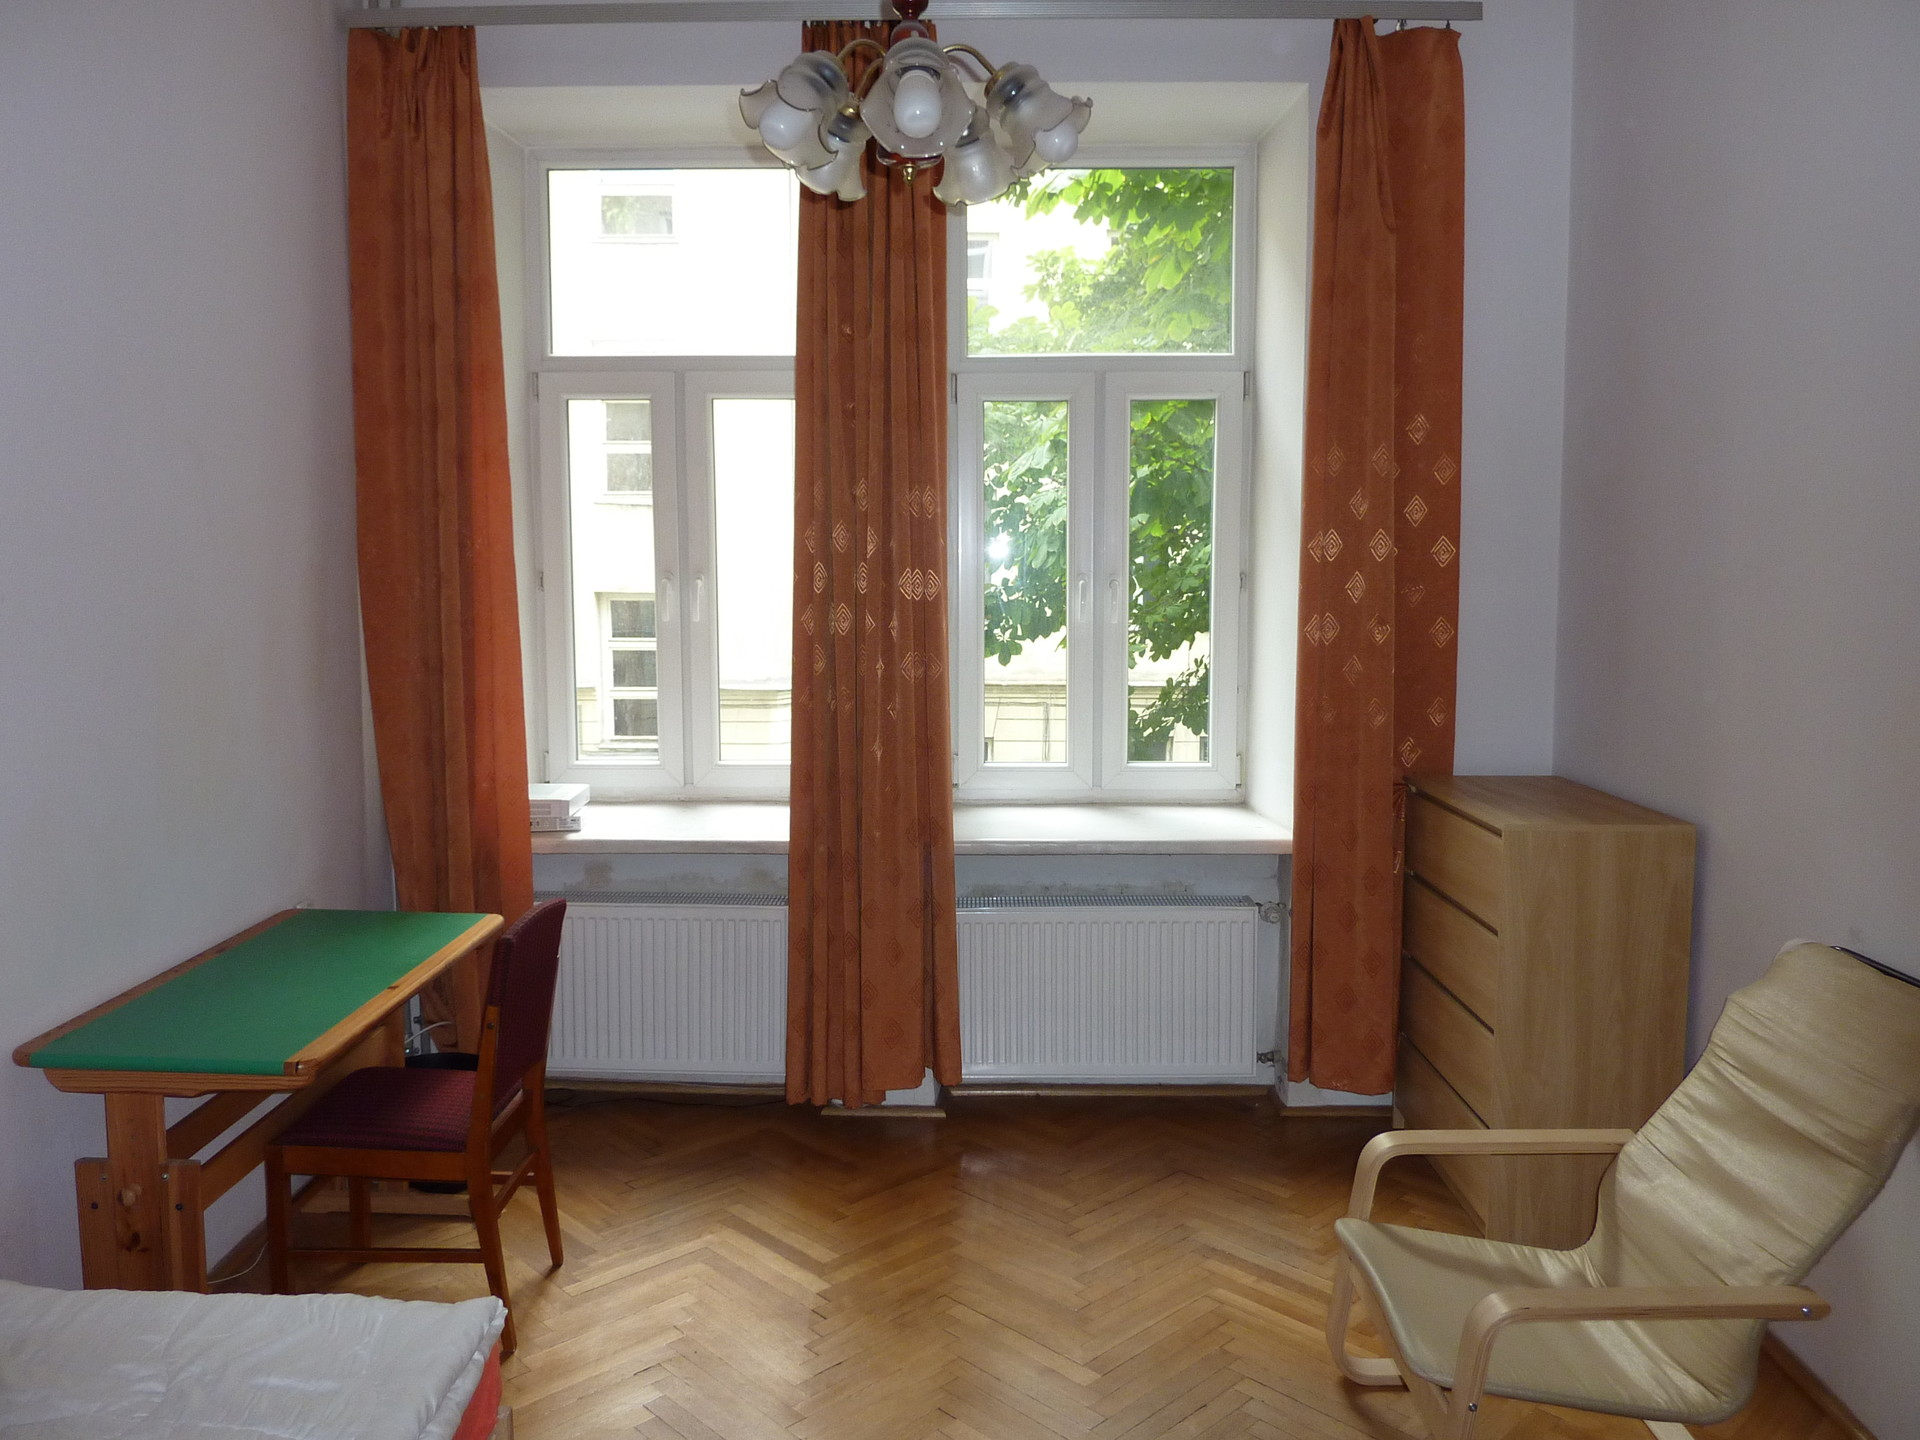 2-spacious-rooms-in-central-warsaw-1d1332a30fc38205d6234e3759739ad3